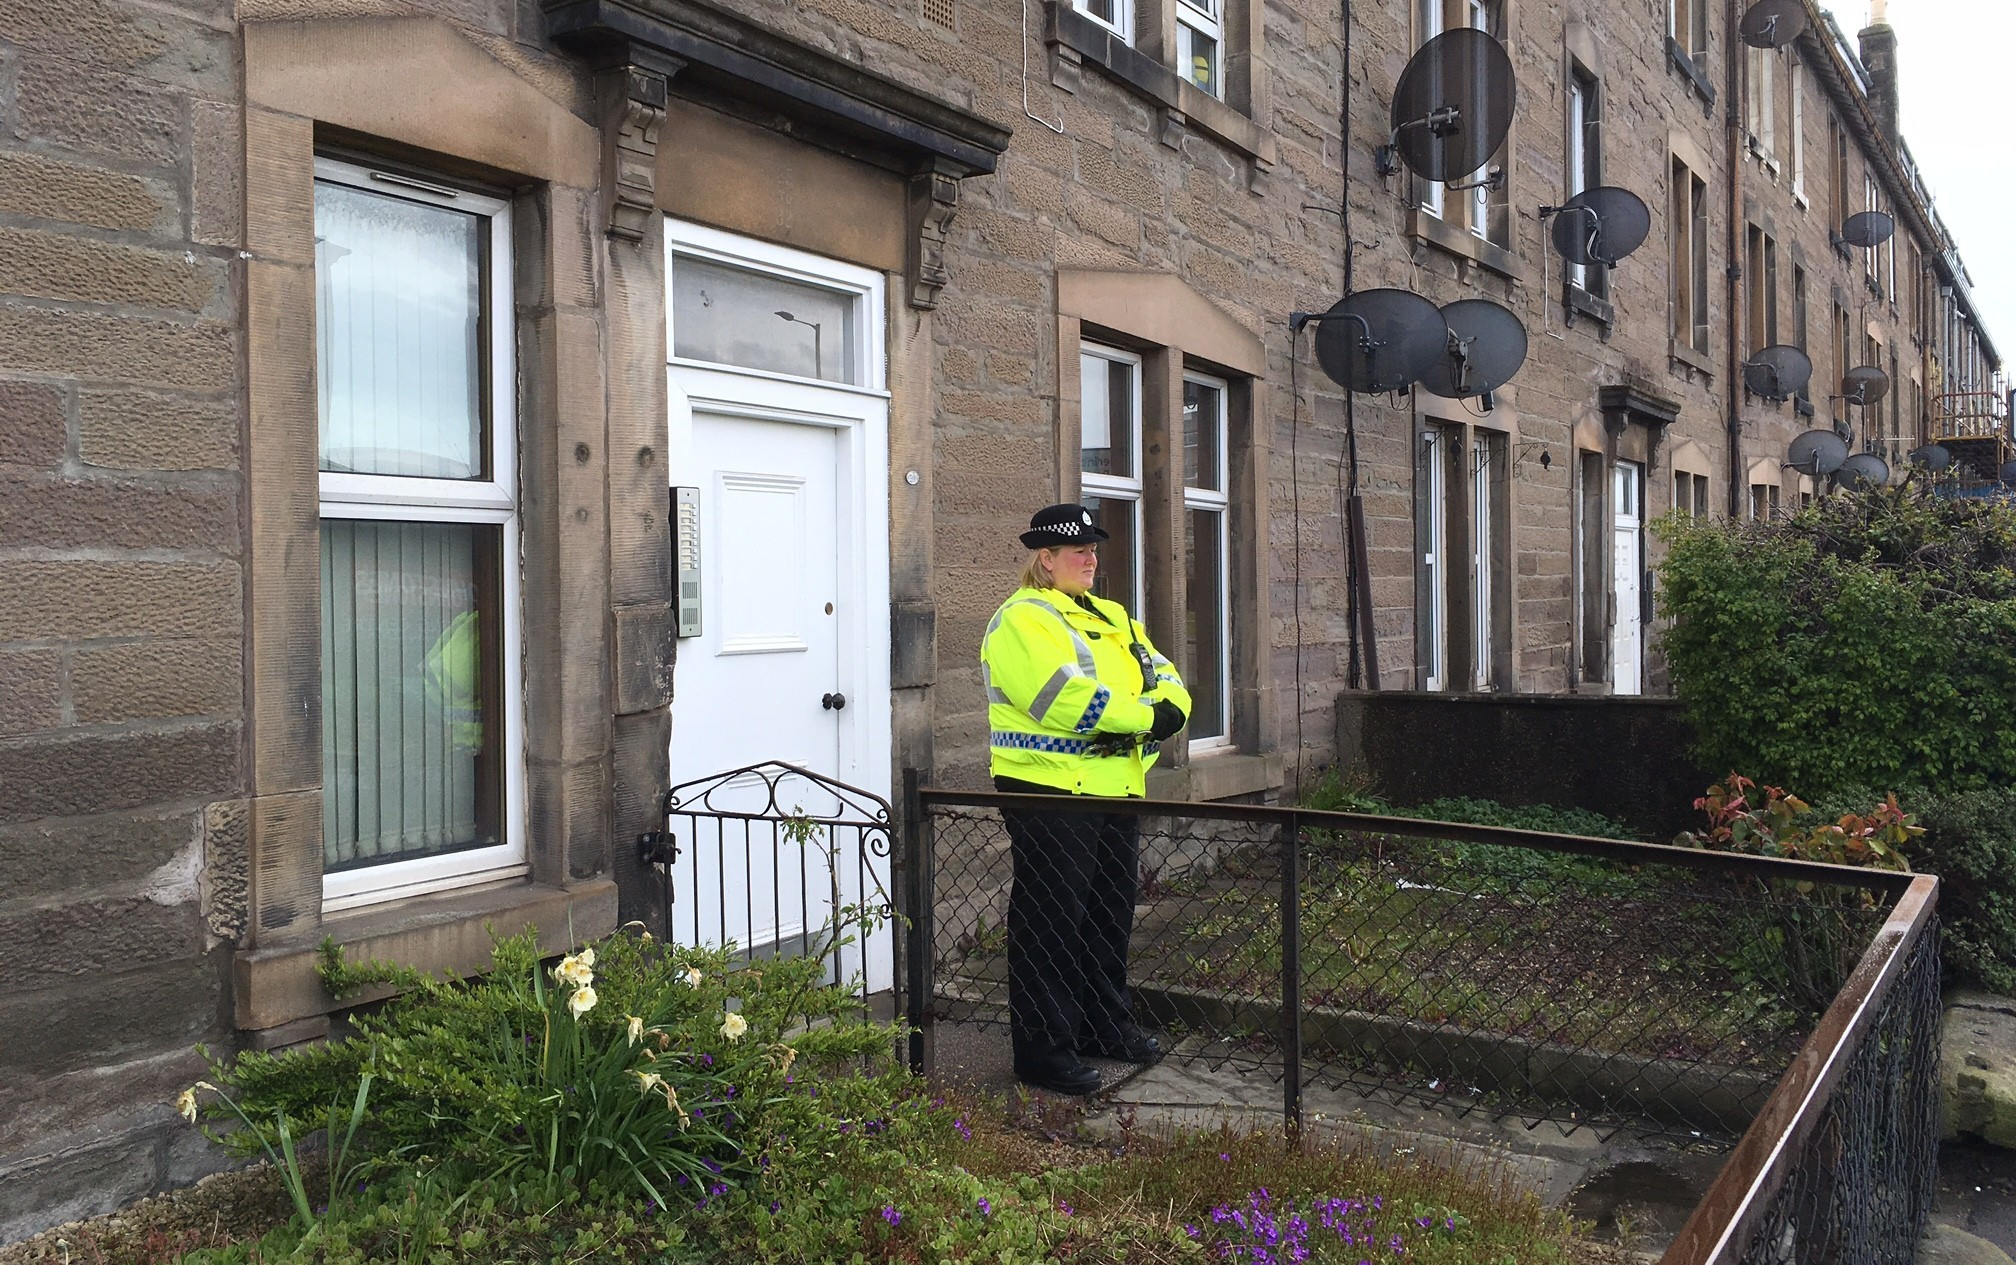 A police officer stands outside the home in Dunkeld Road where Louise O'Brien was found dead last week.